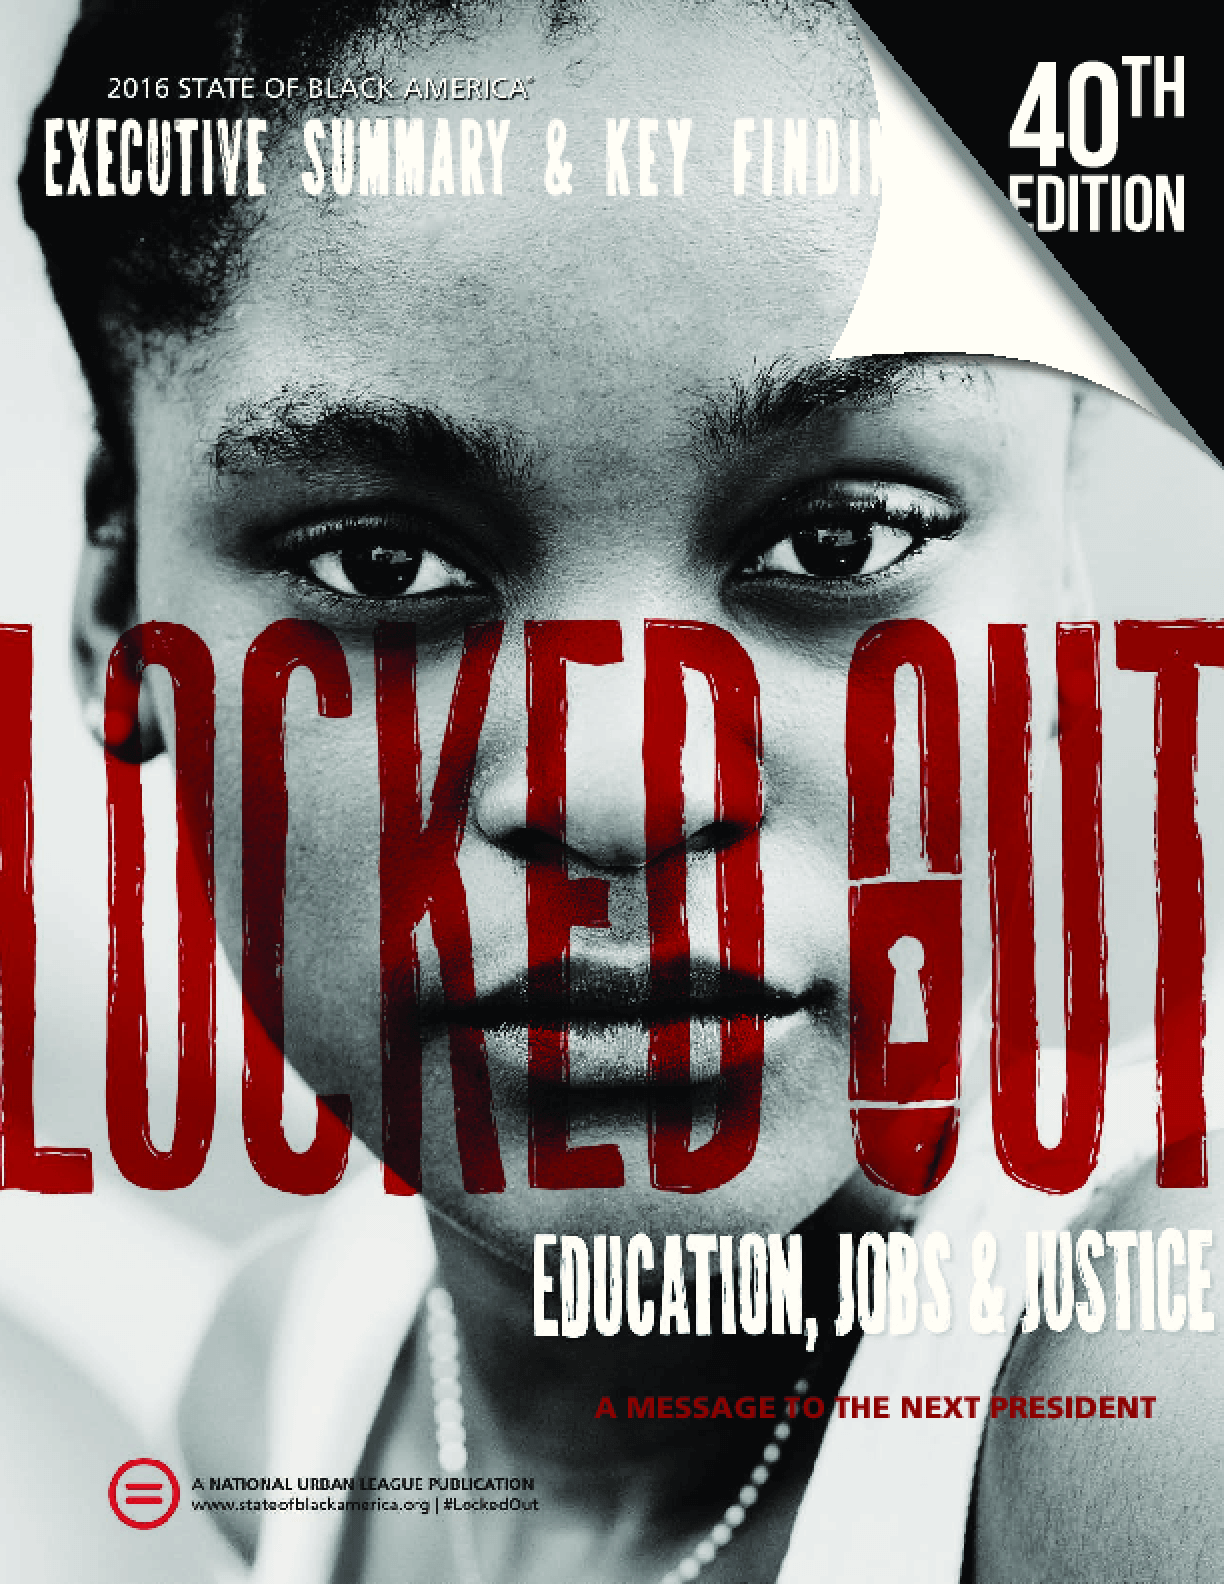 Locked Out: Education, Jobs and Justice - A Message to the Next President; Executive Summary and Key Findings